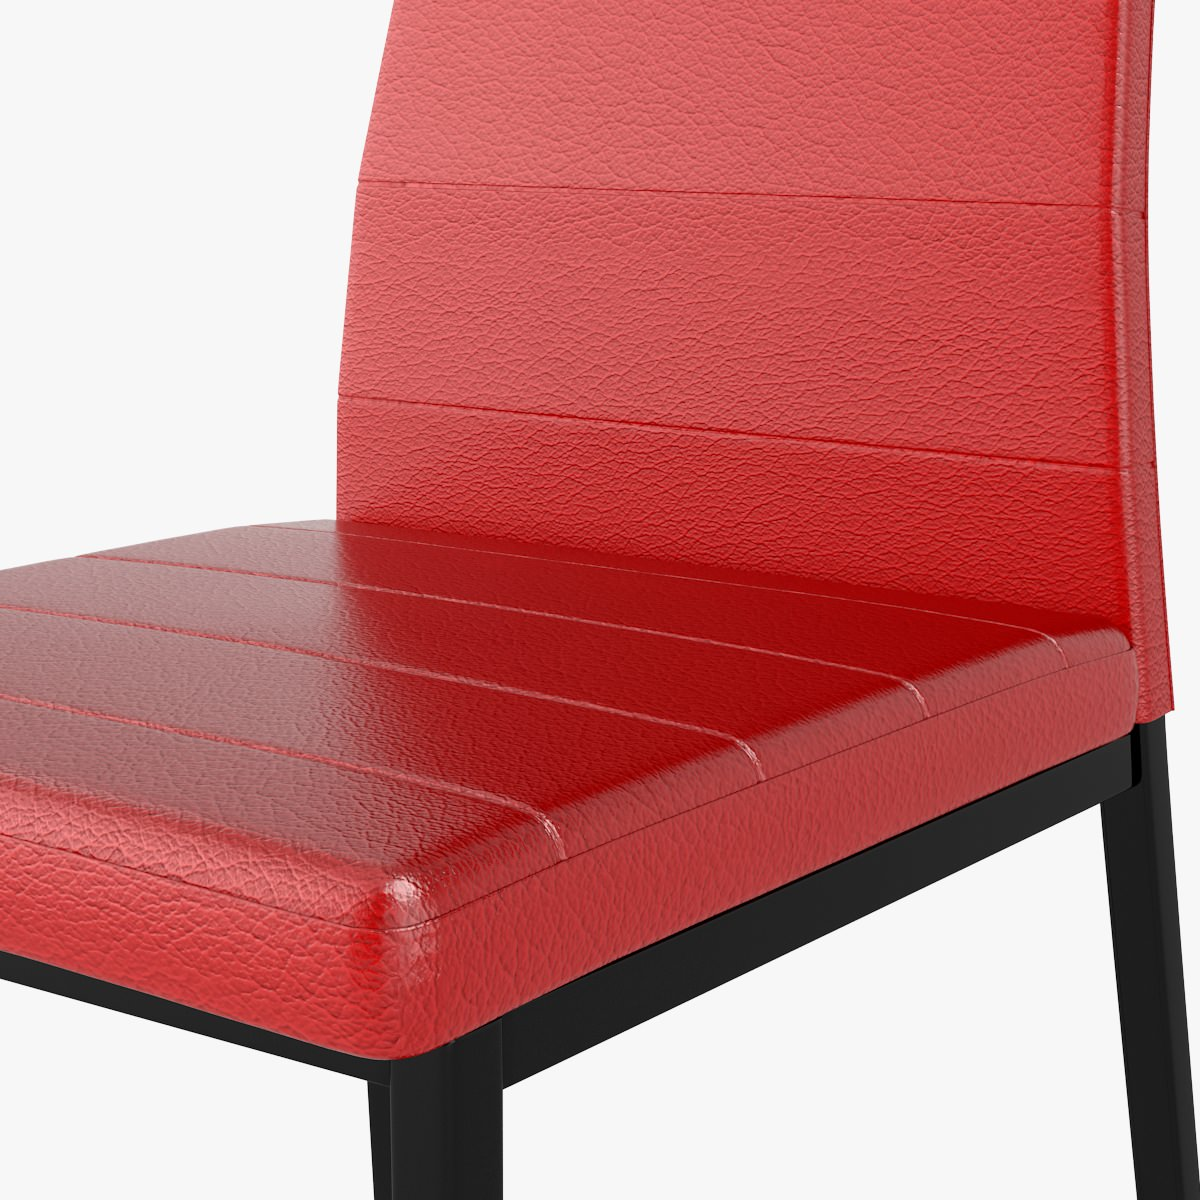 Red Leather Chair 3d Model Max Obj Fbx C4d Cgtrader Com